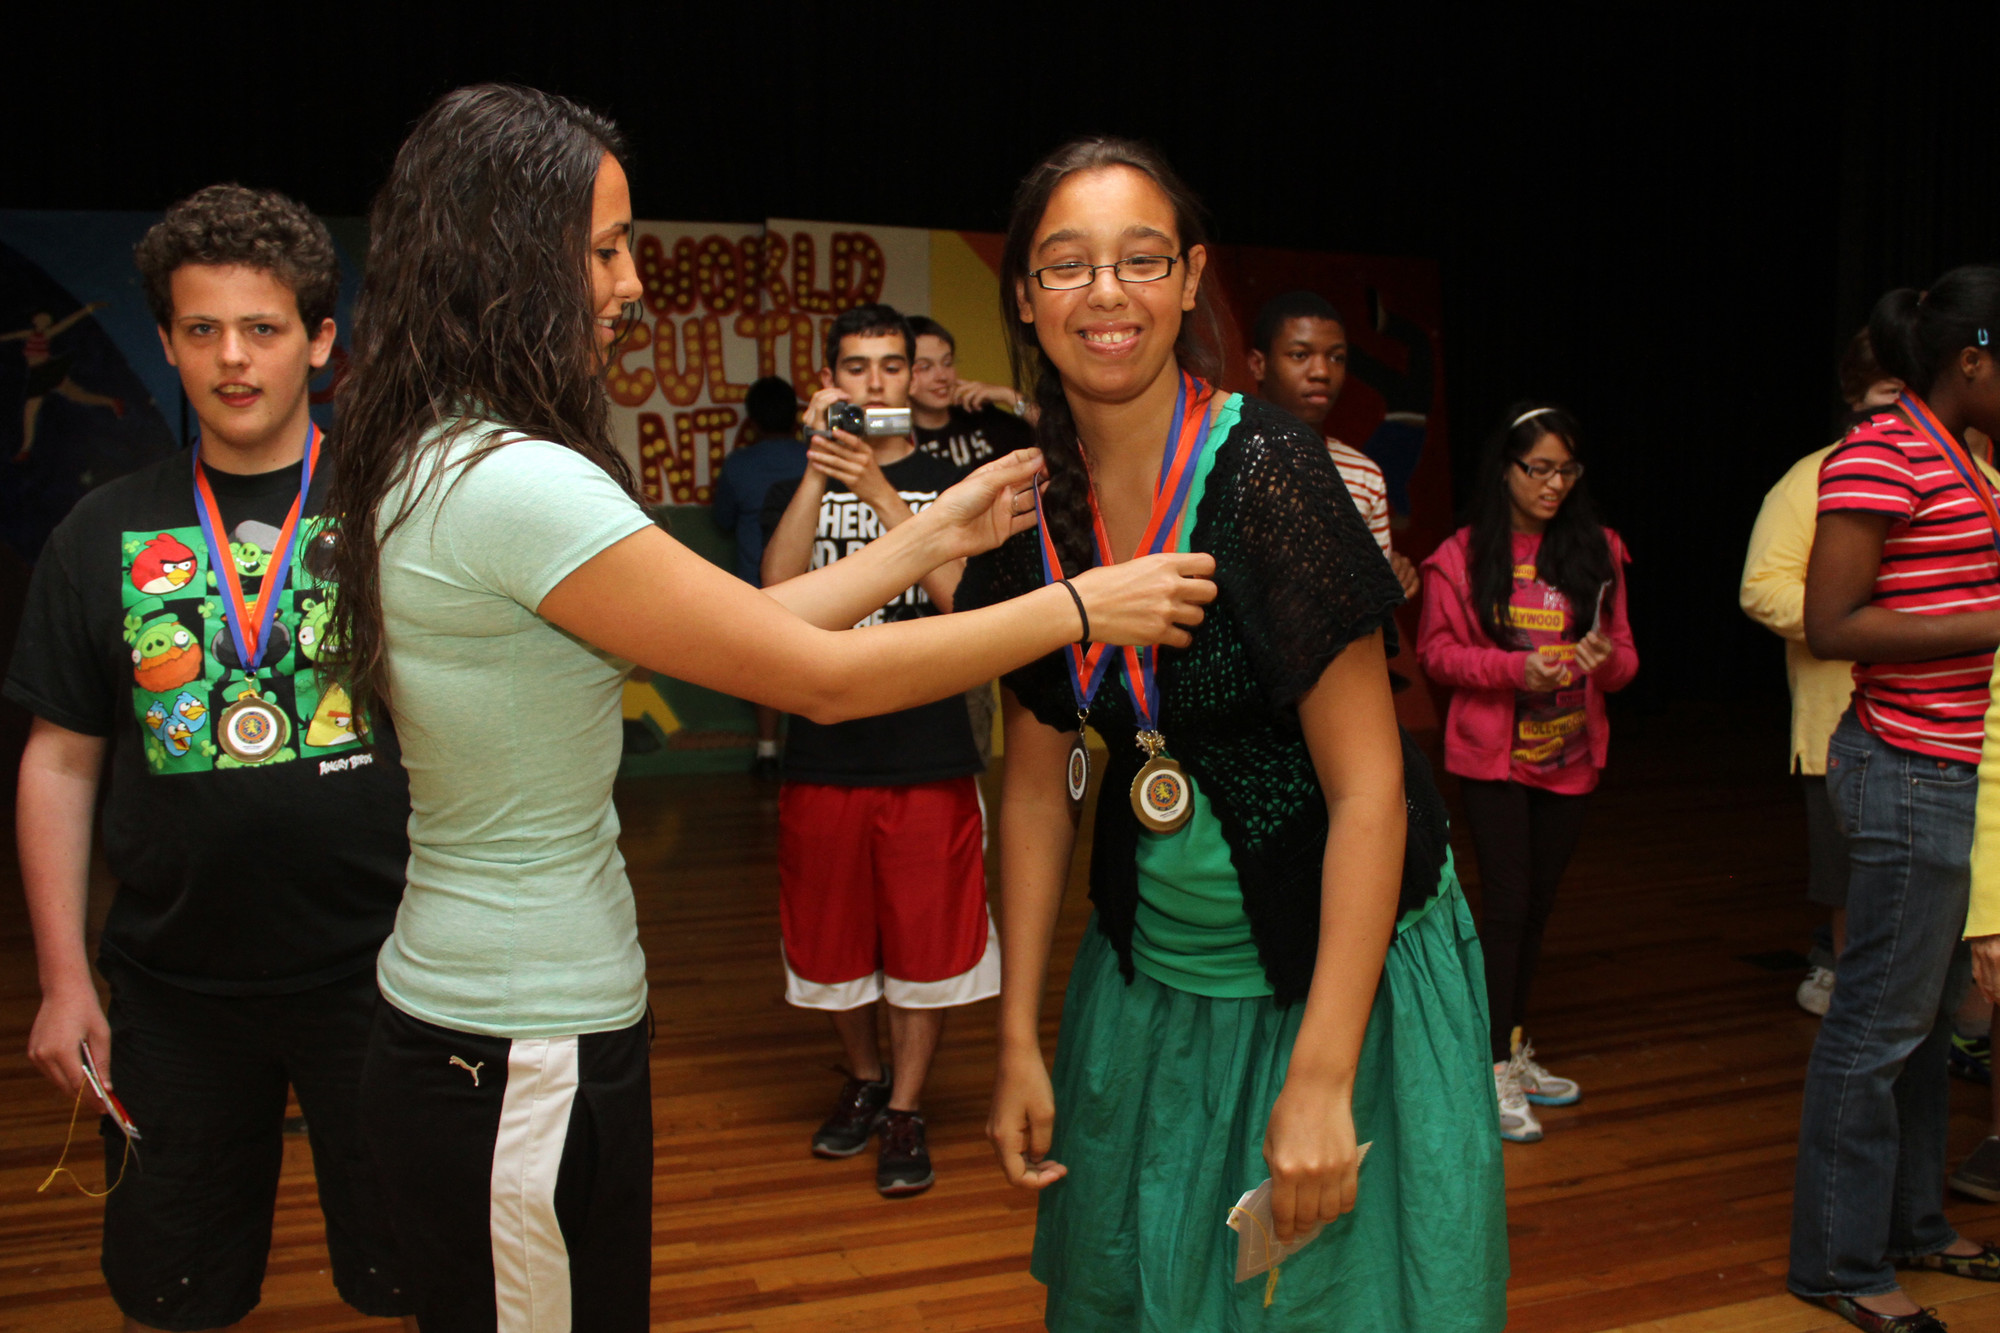 Mandi Espino received a gold medal from teacher Jessica Ricotta.